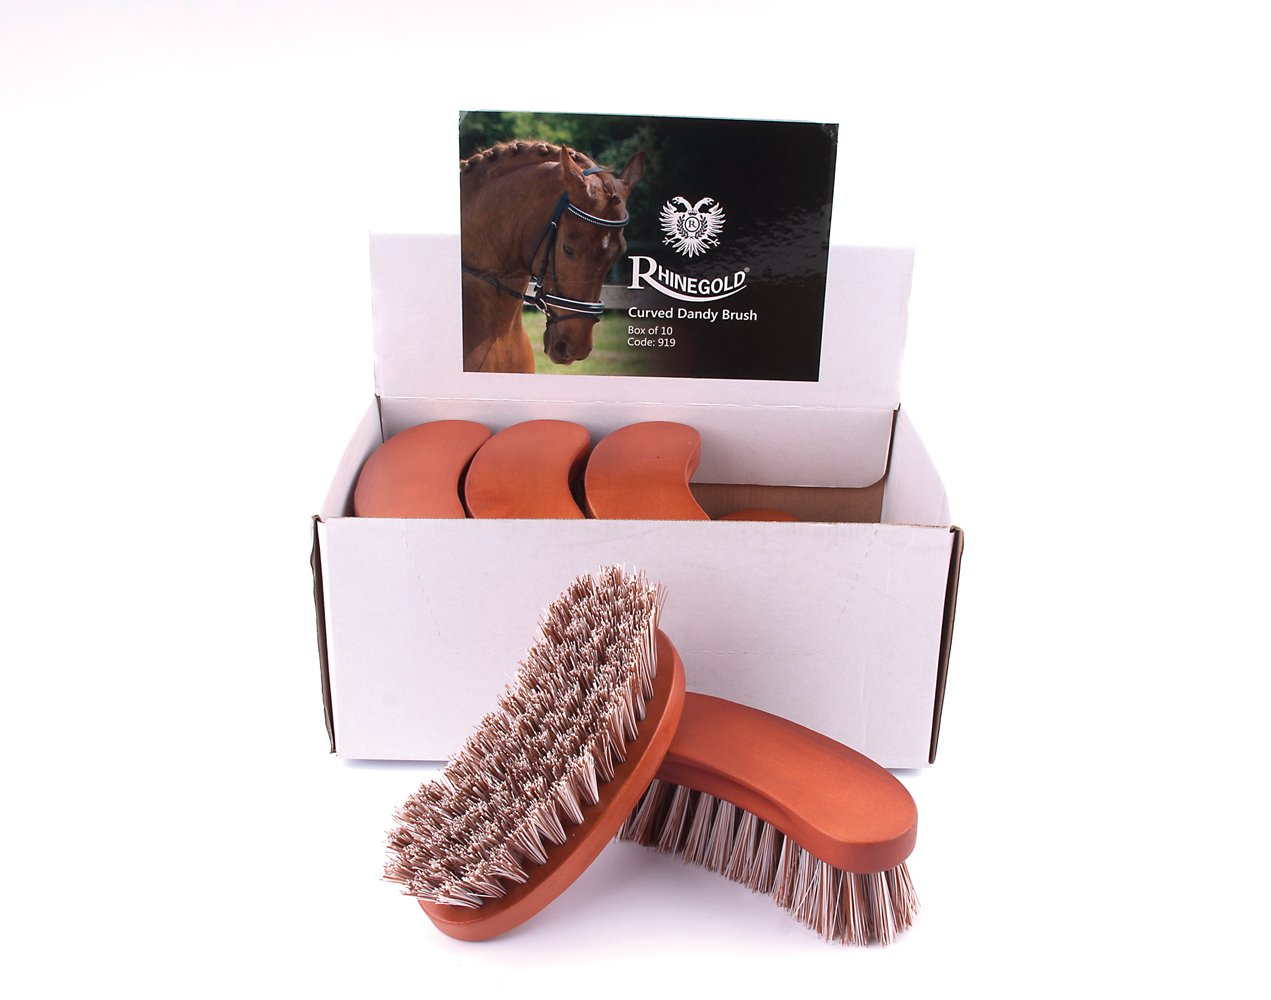 Rhinegold Curved Dandy Grooming Brush